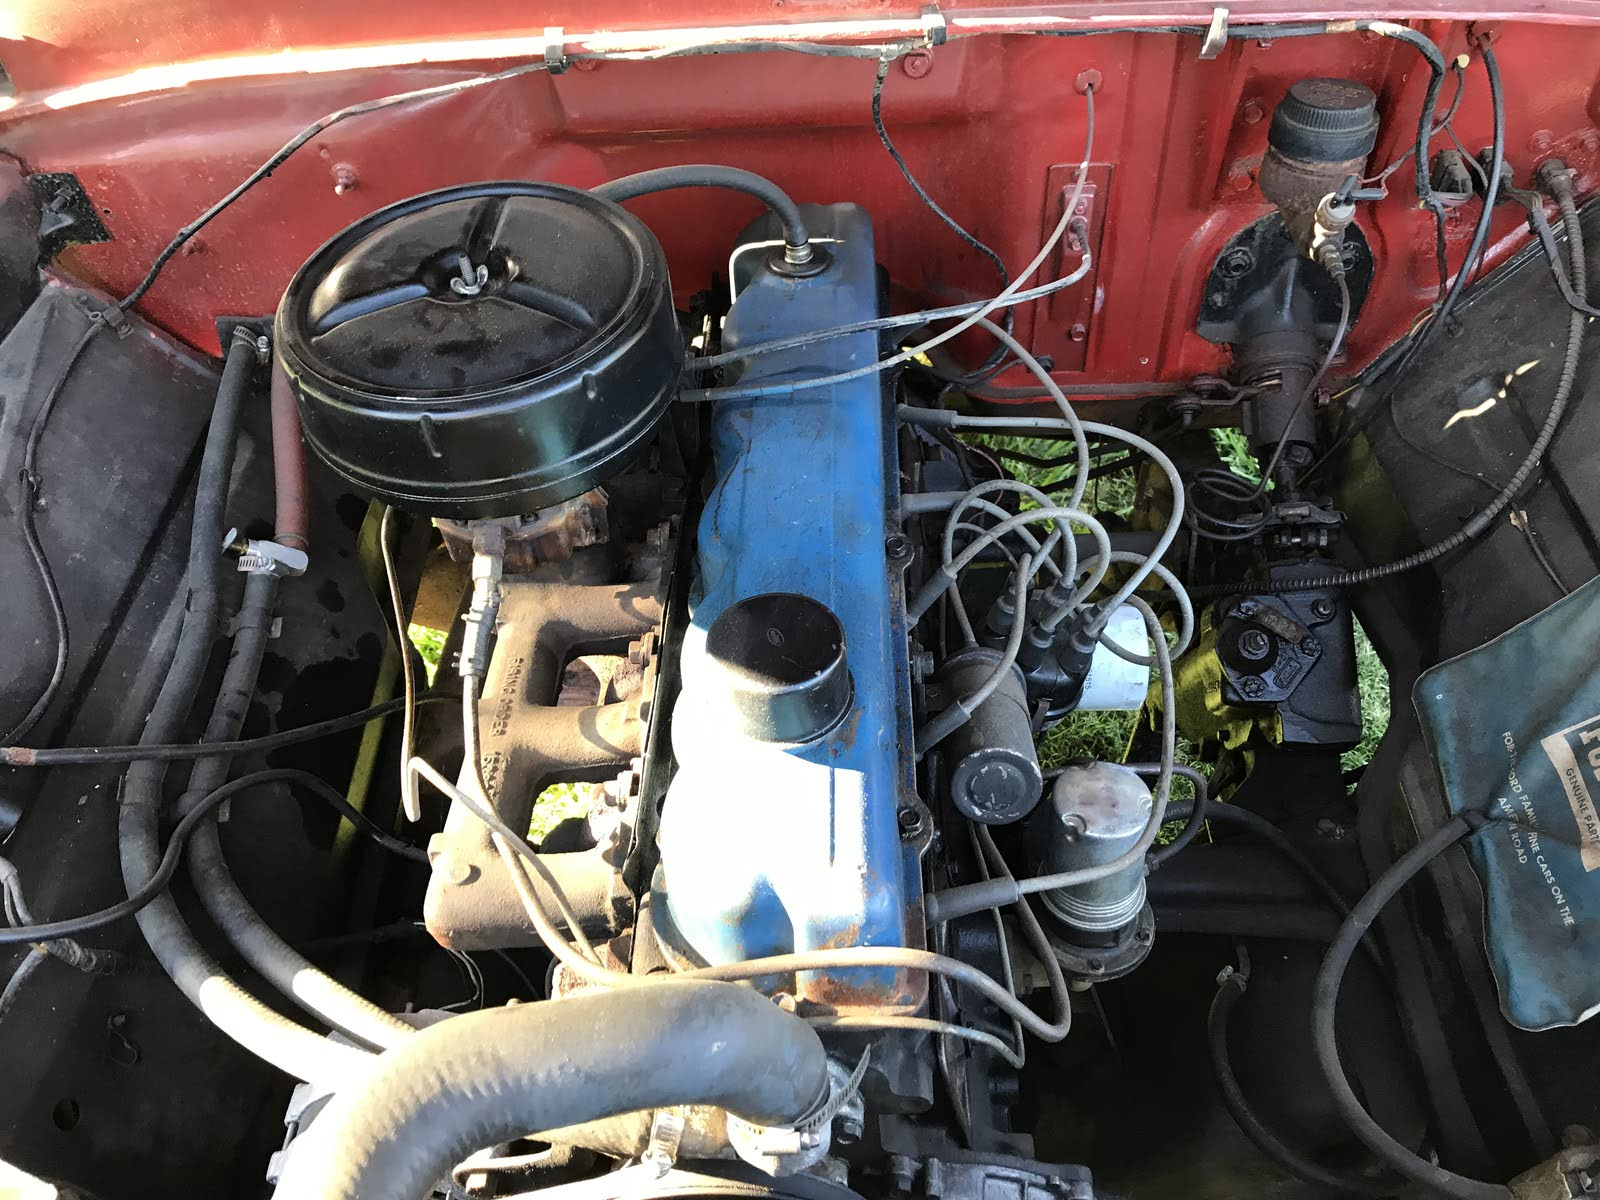 Th6220d Wiring Diagram Ford F 100 Questions Trying To Figure Out Which Engine I Have